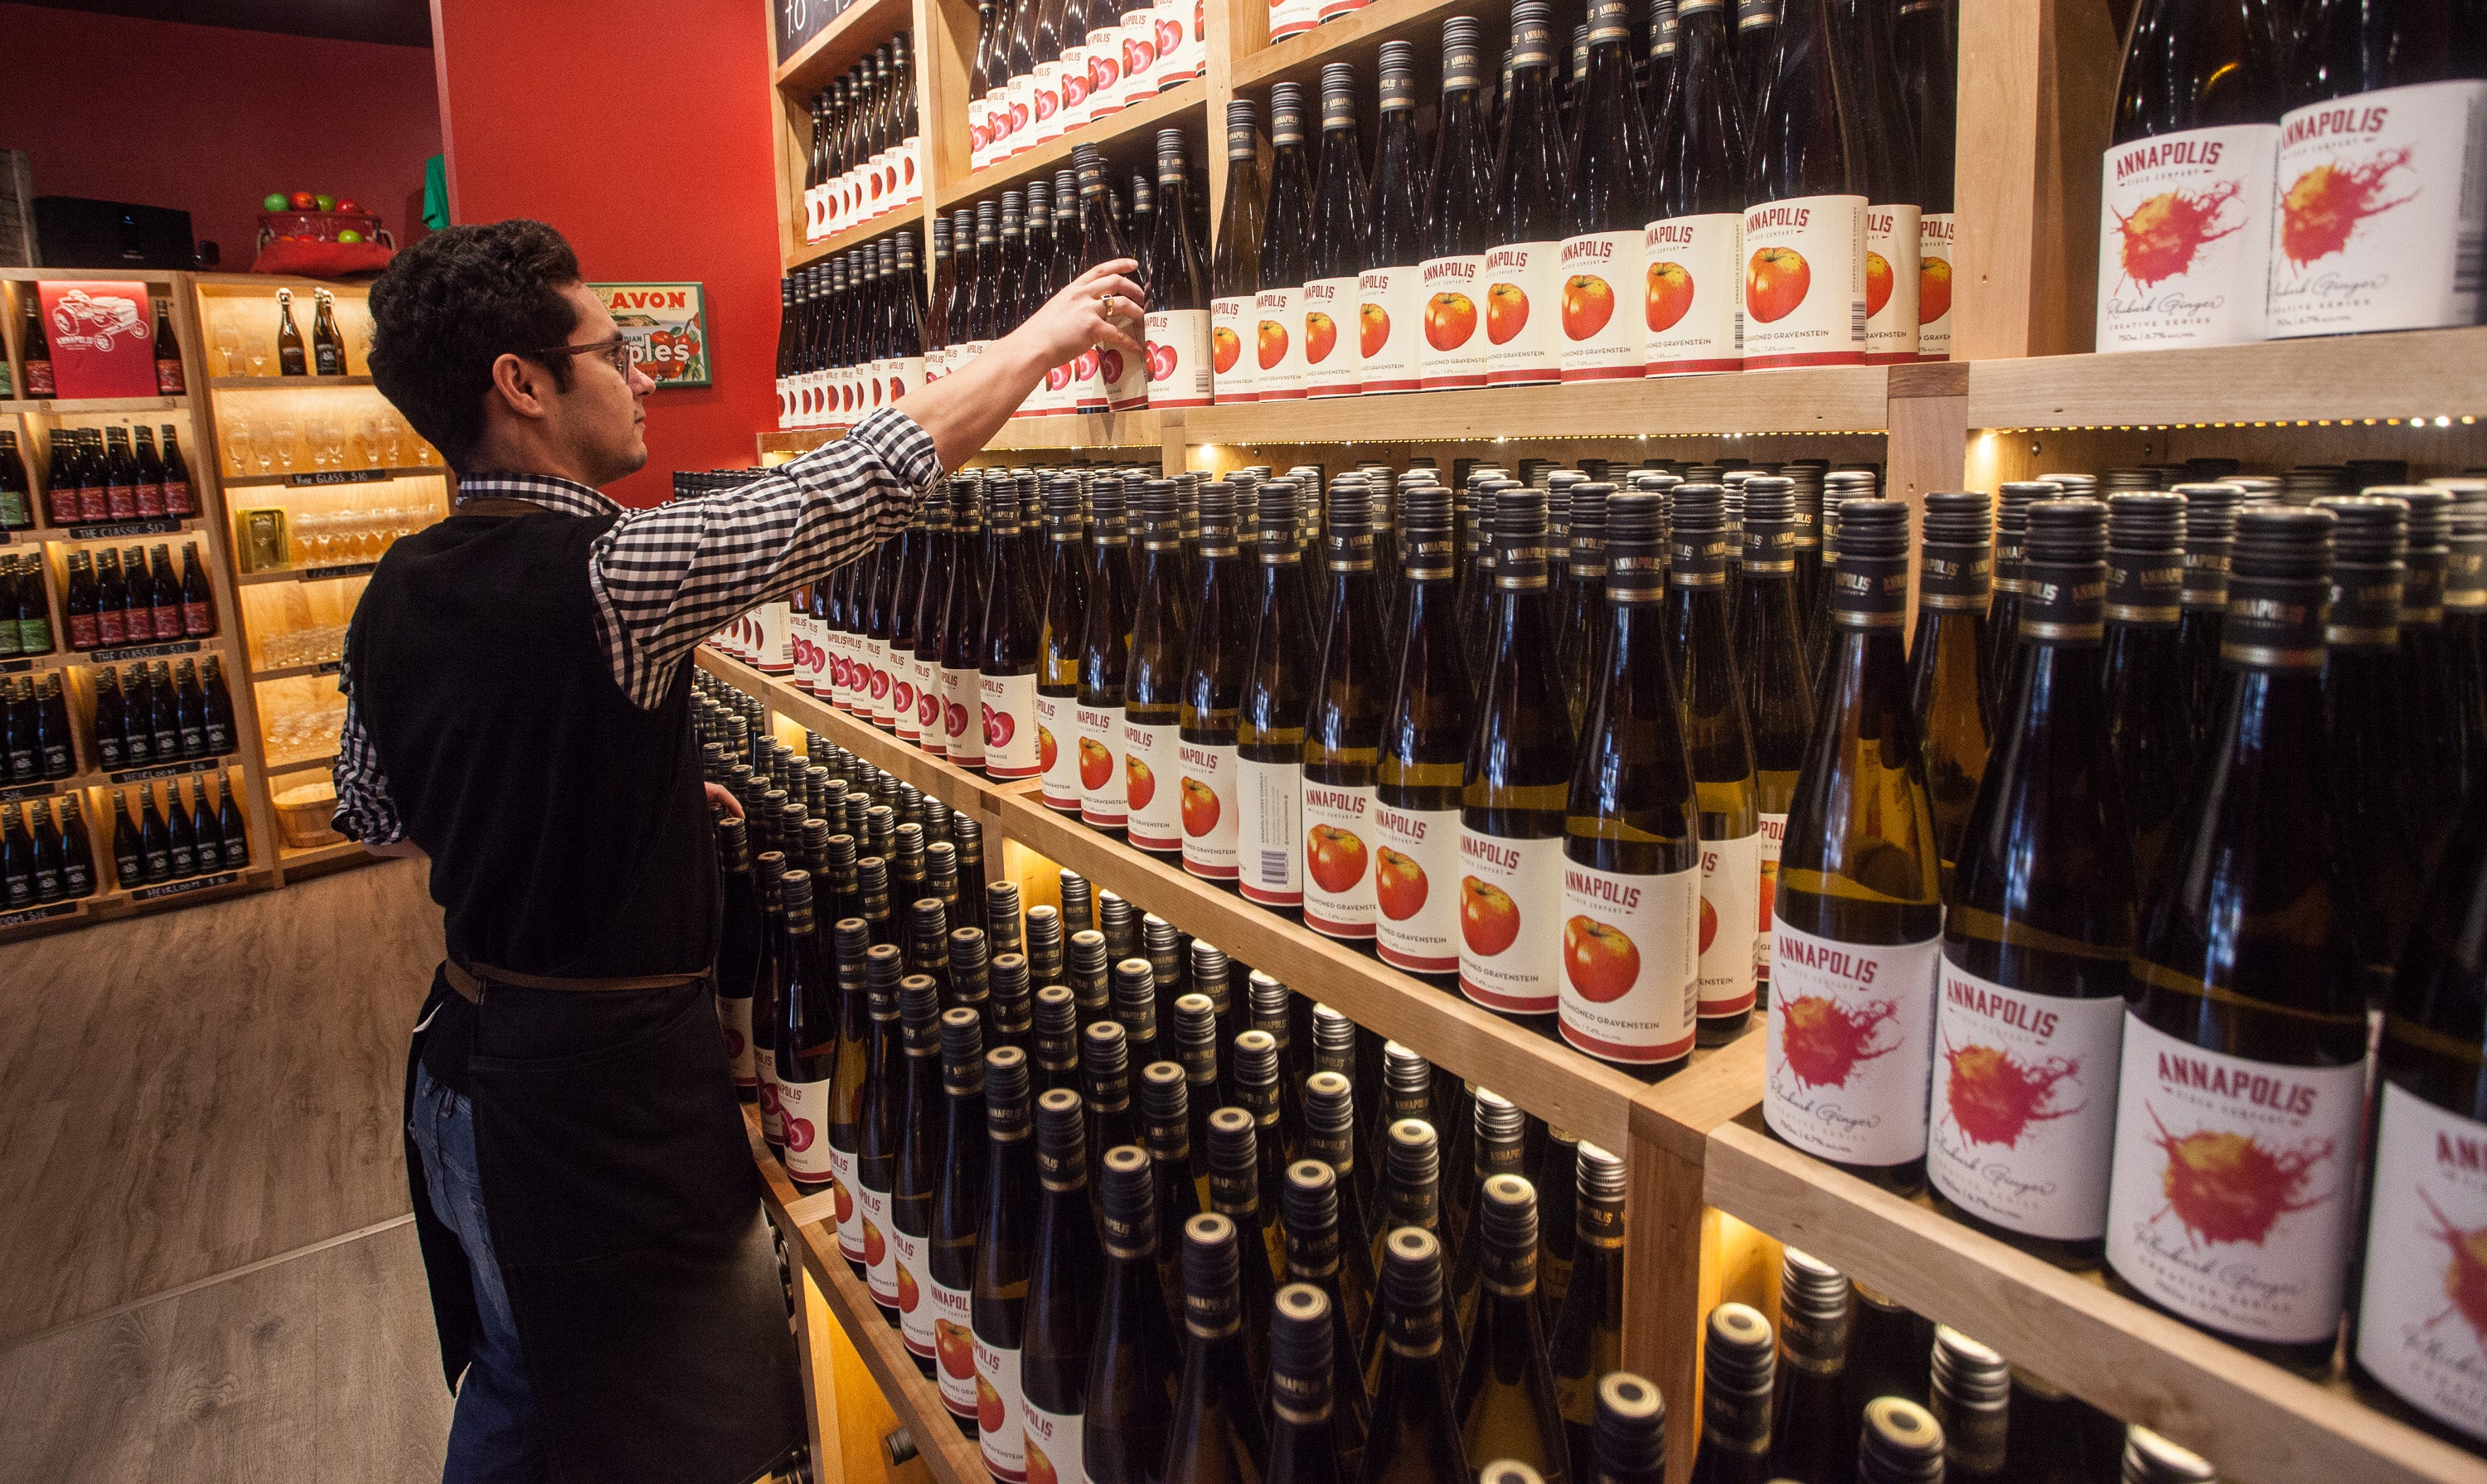 A worker stocks the shelves at the Annapolis Cider Company.